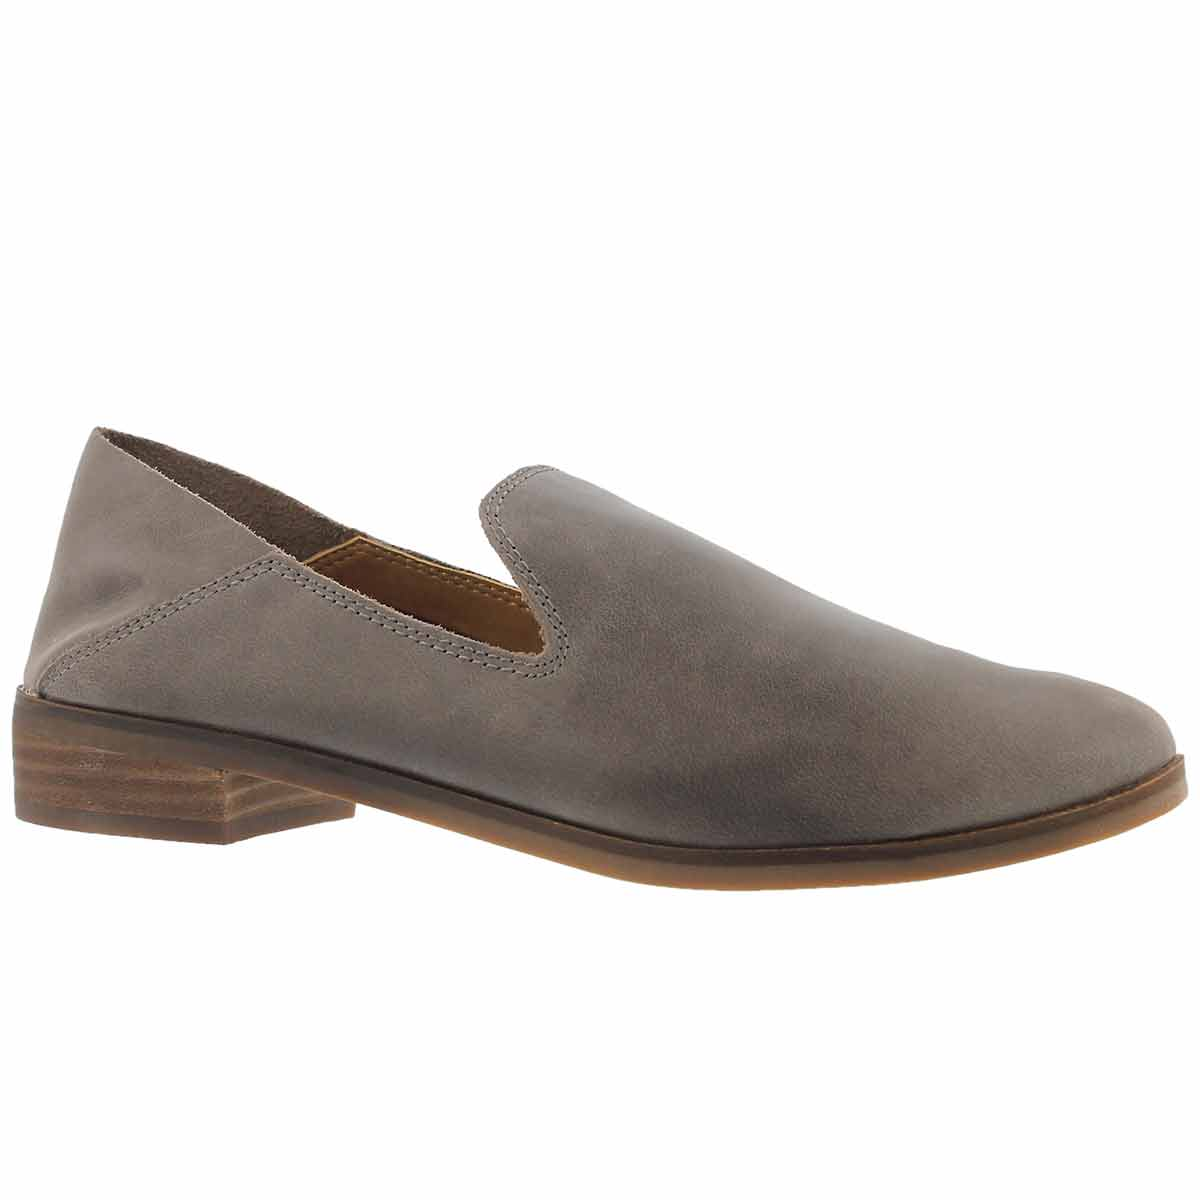 Women's CAHILL driftwood casual slip on shoes